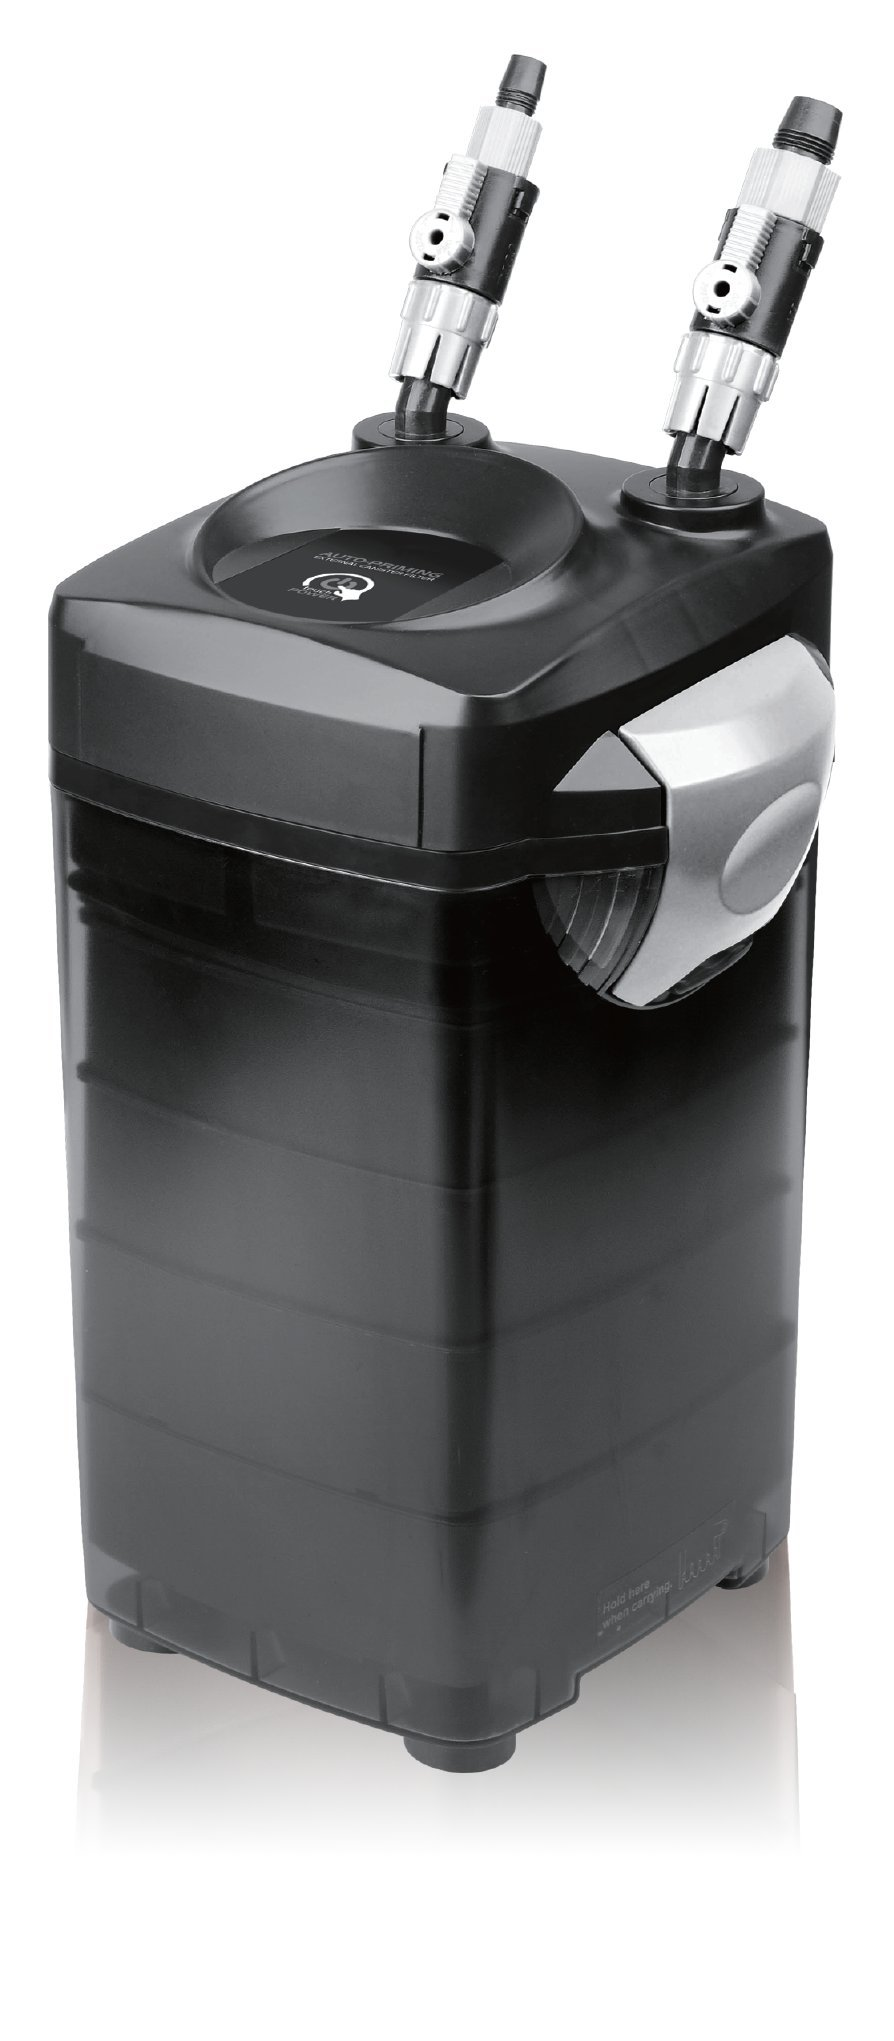 Canister+ Pro - 4-Stage Canister Filter with Auto Prime Technology - Up to 80 Gallons - 317GPH by Encompass All (Image #1)